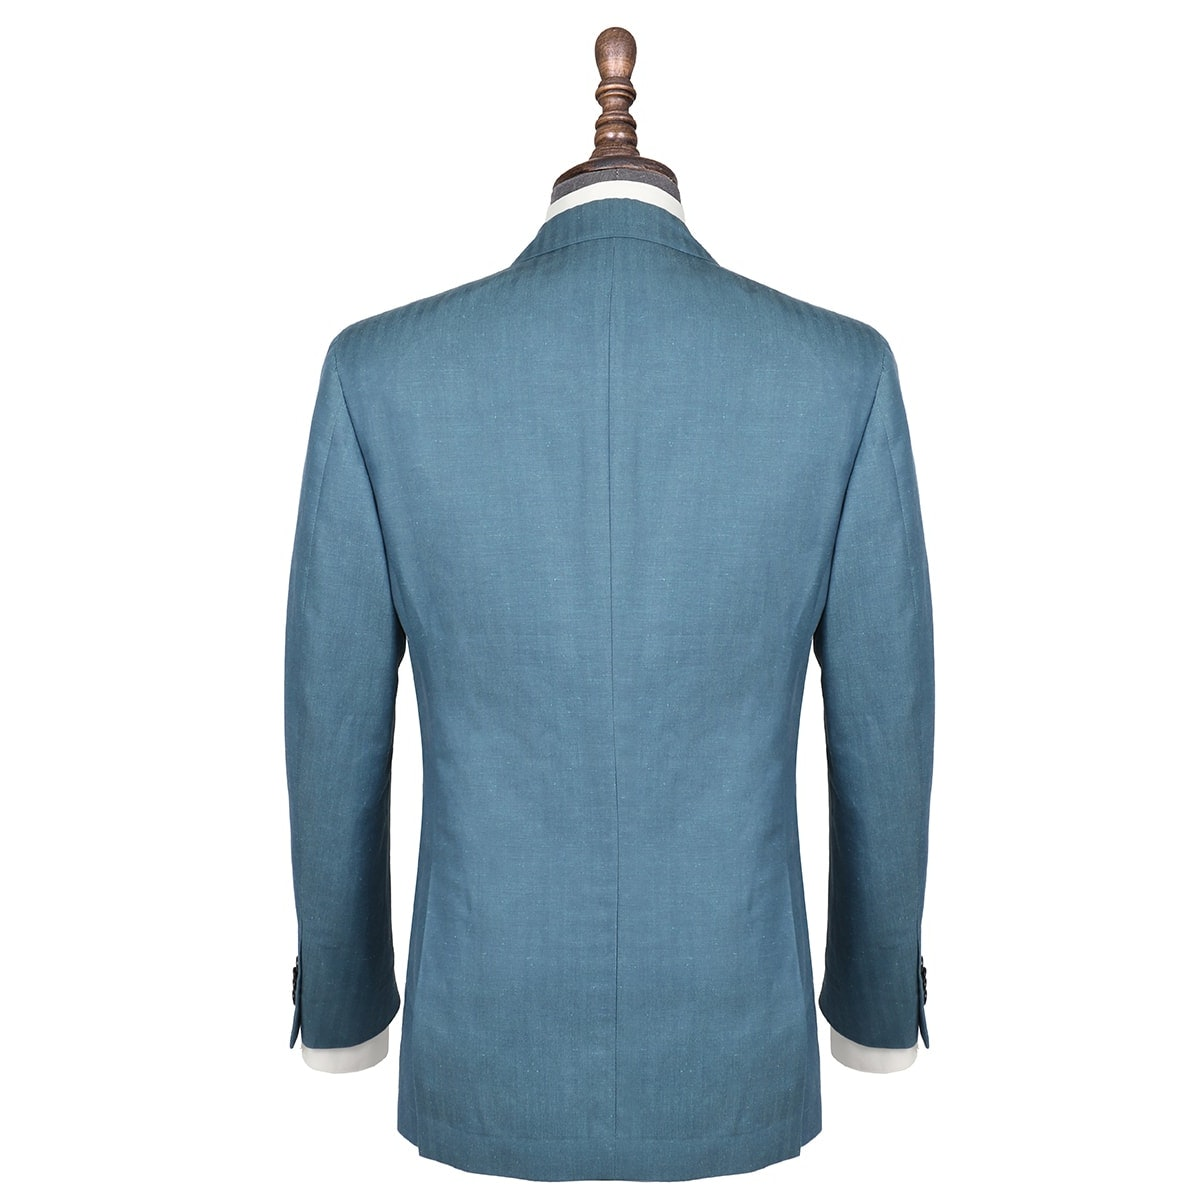 InStitchu Collection Green Herringbone Linen and Cotton Blend Jacket